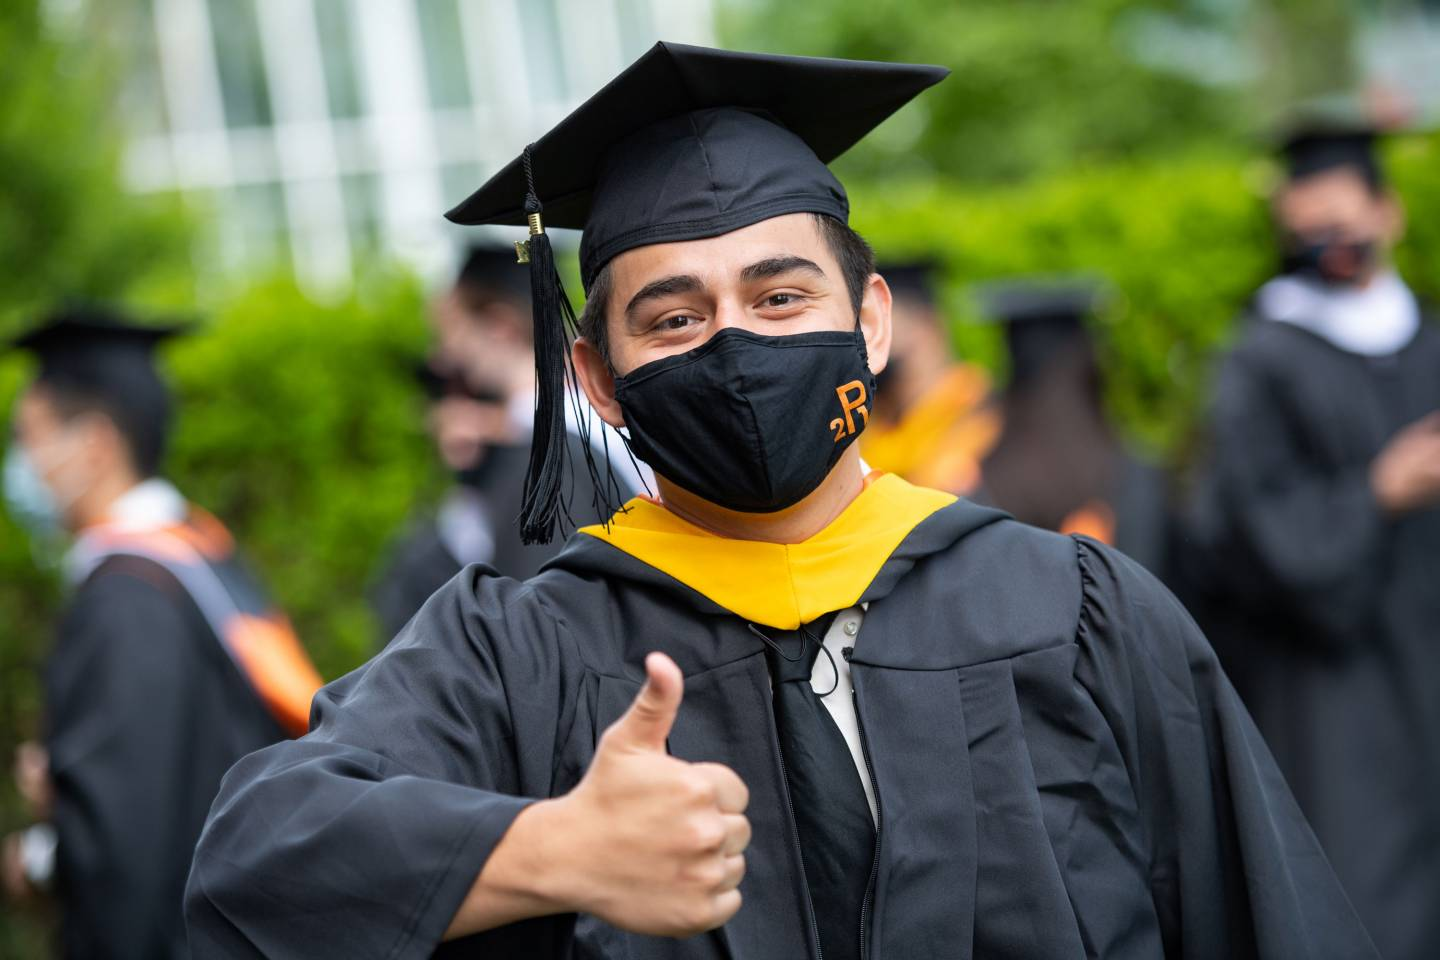 A student gives a thumbs up sign